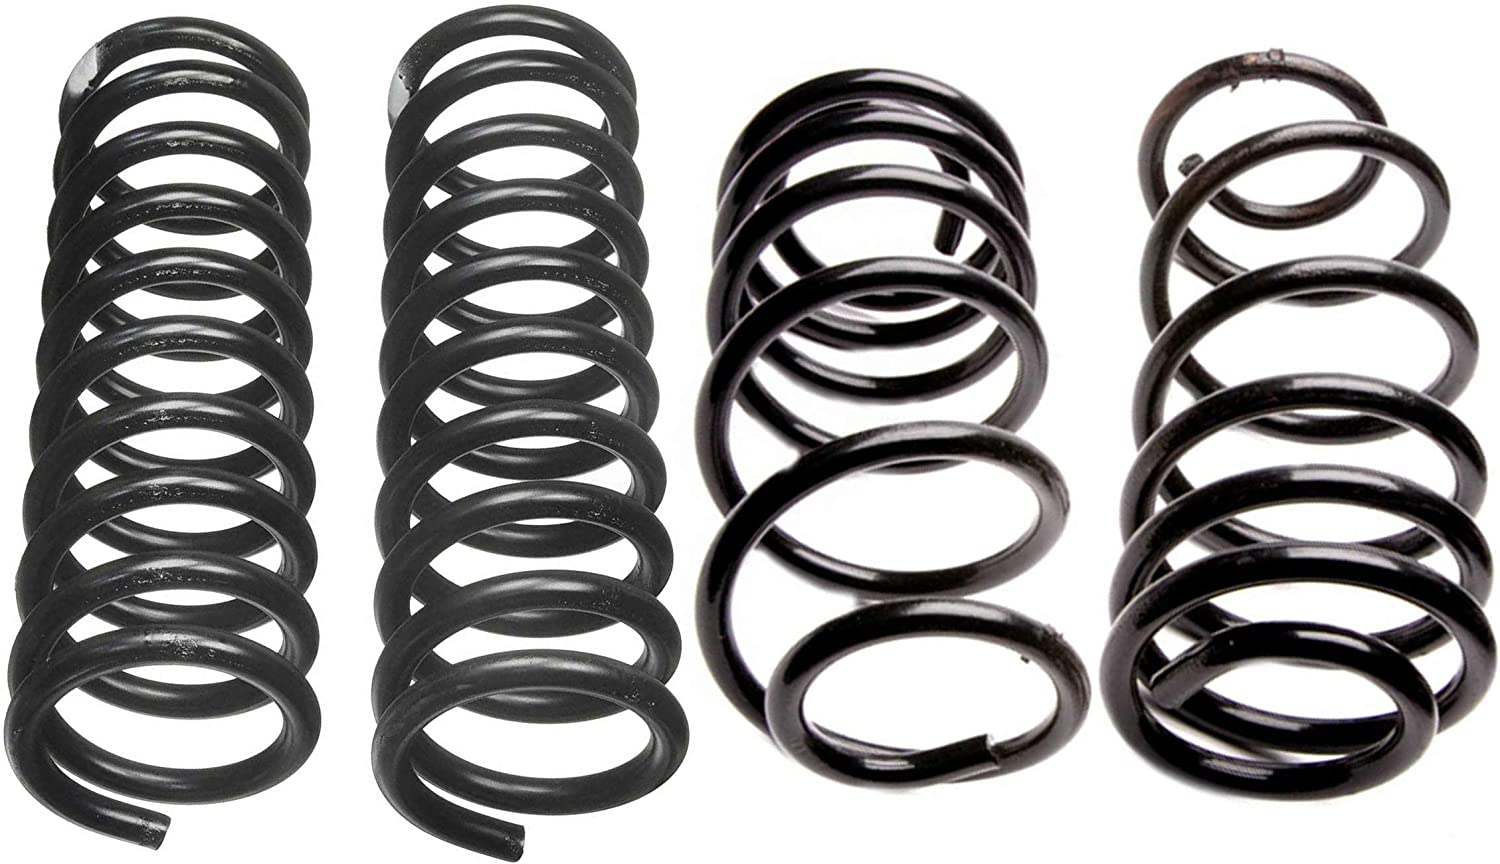 Lesjofors Tucson Mall Front STD Rear Sale special price Cargo Coil 7. Kit Springs For Marquis